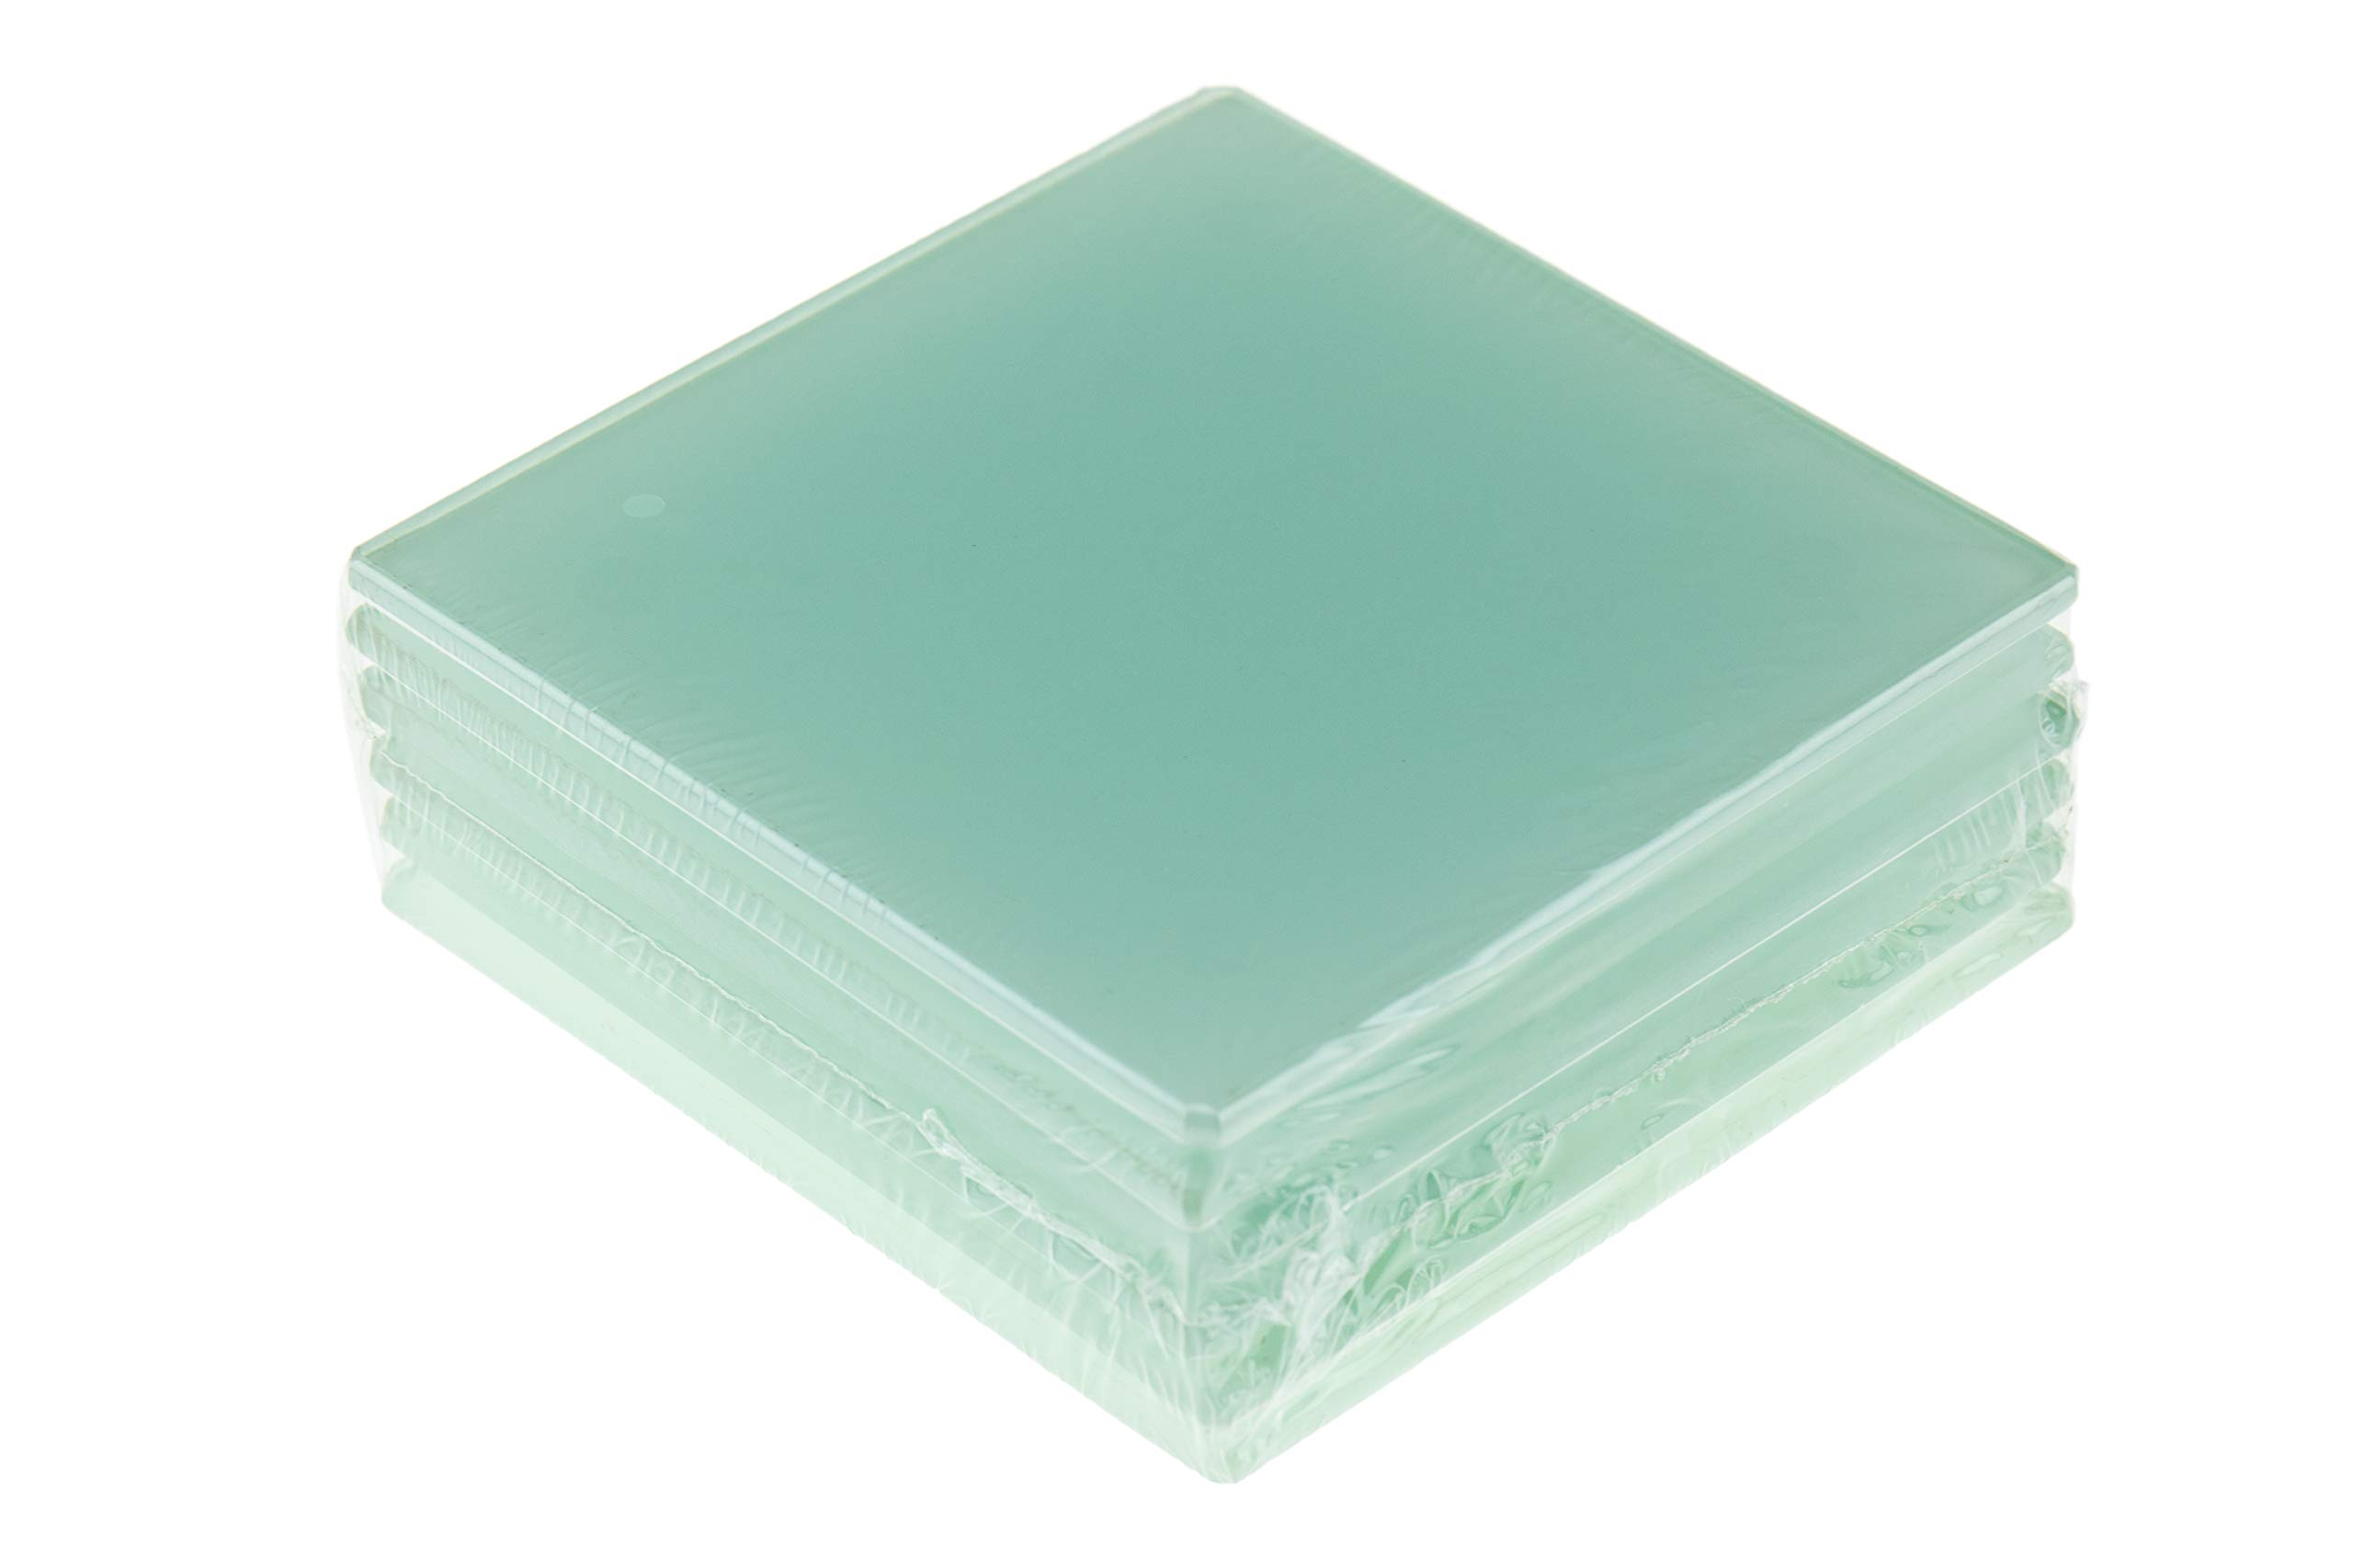 6 COASTERS ACRYLIC GLASS LOOK SQUARE COASTERS ANTI SLIP SHATTER RESISTANT X 6